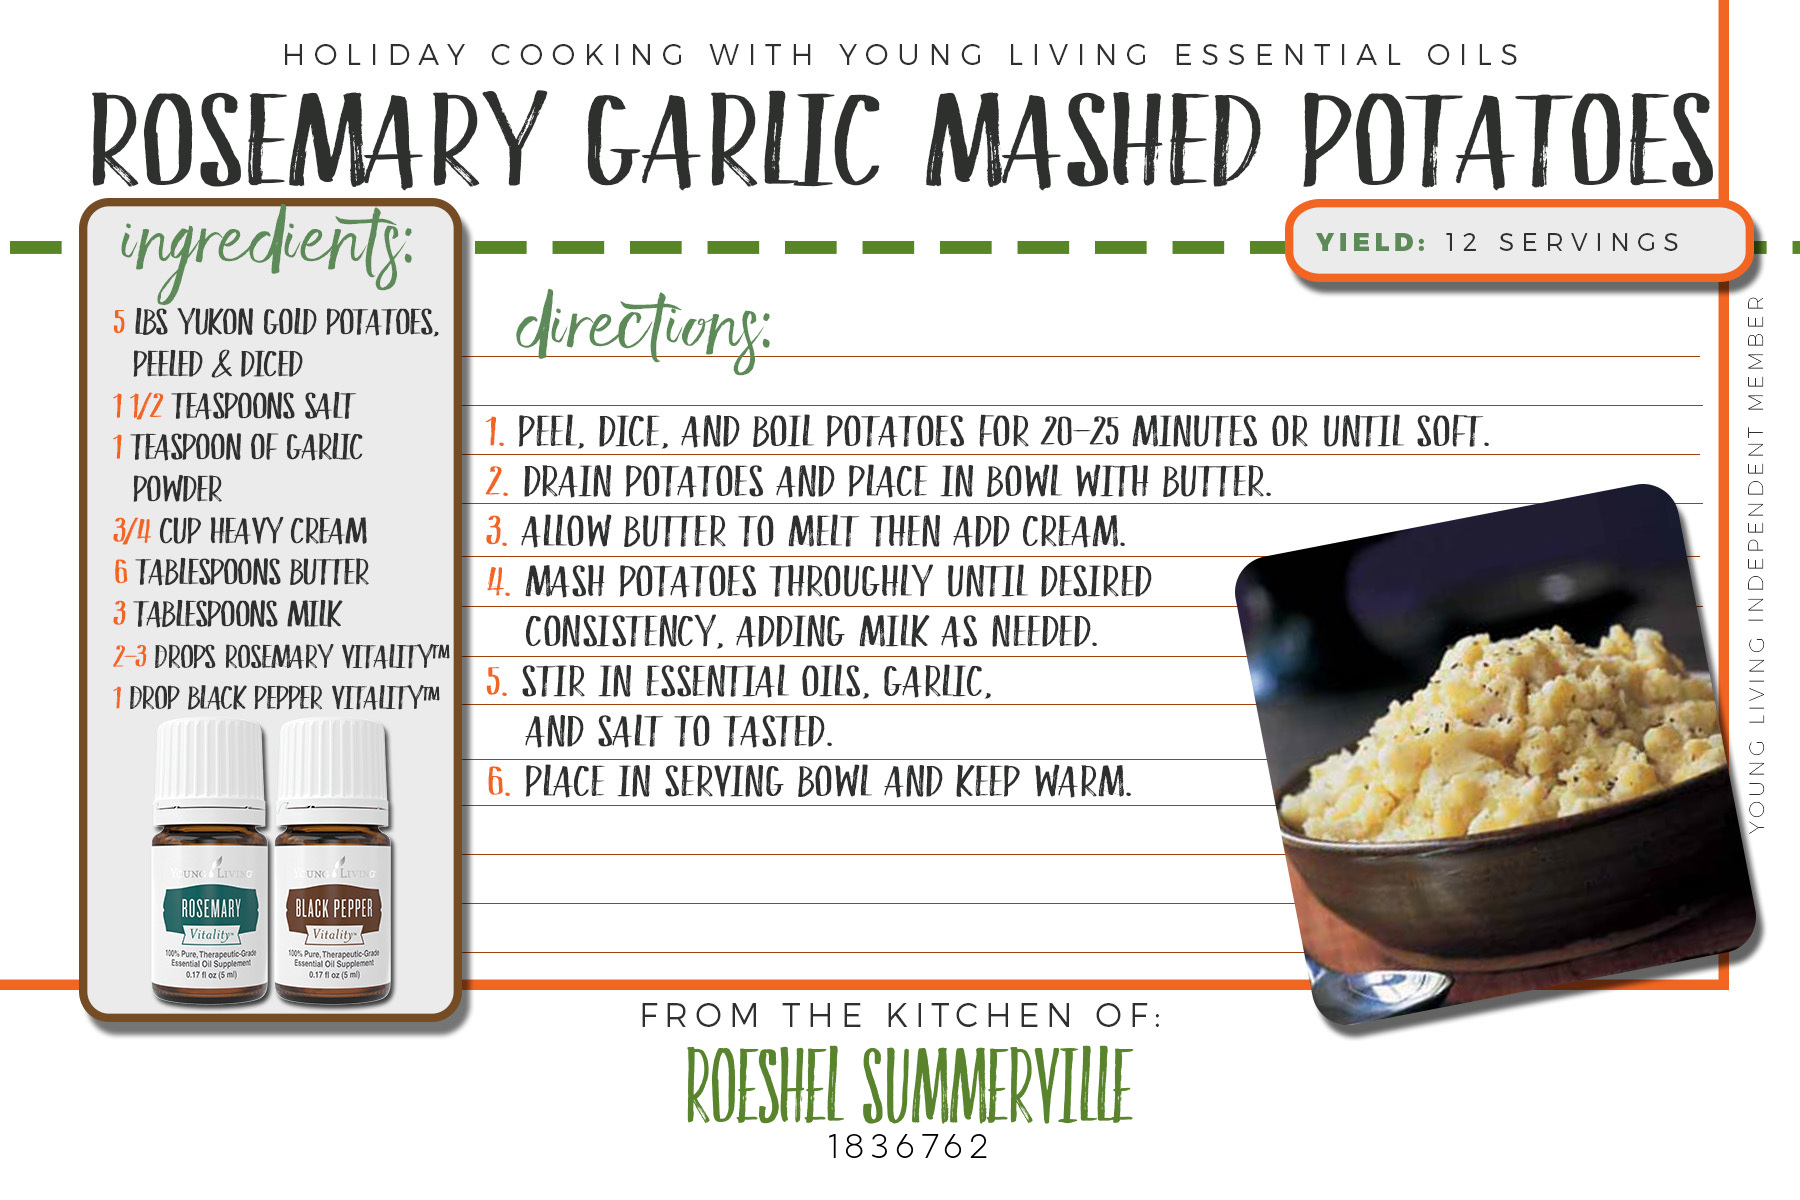 rosemary garlic mashed potatoes recipe